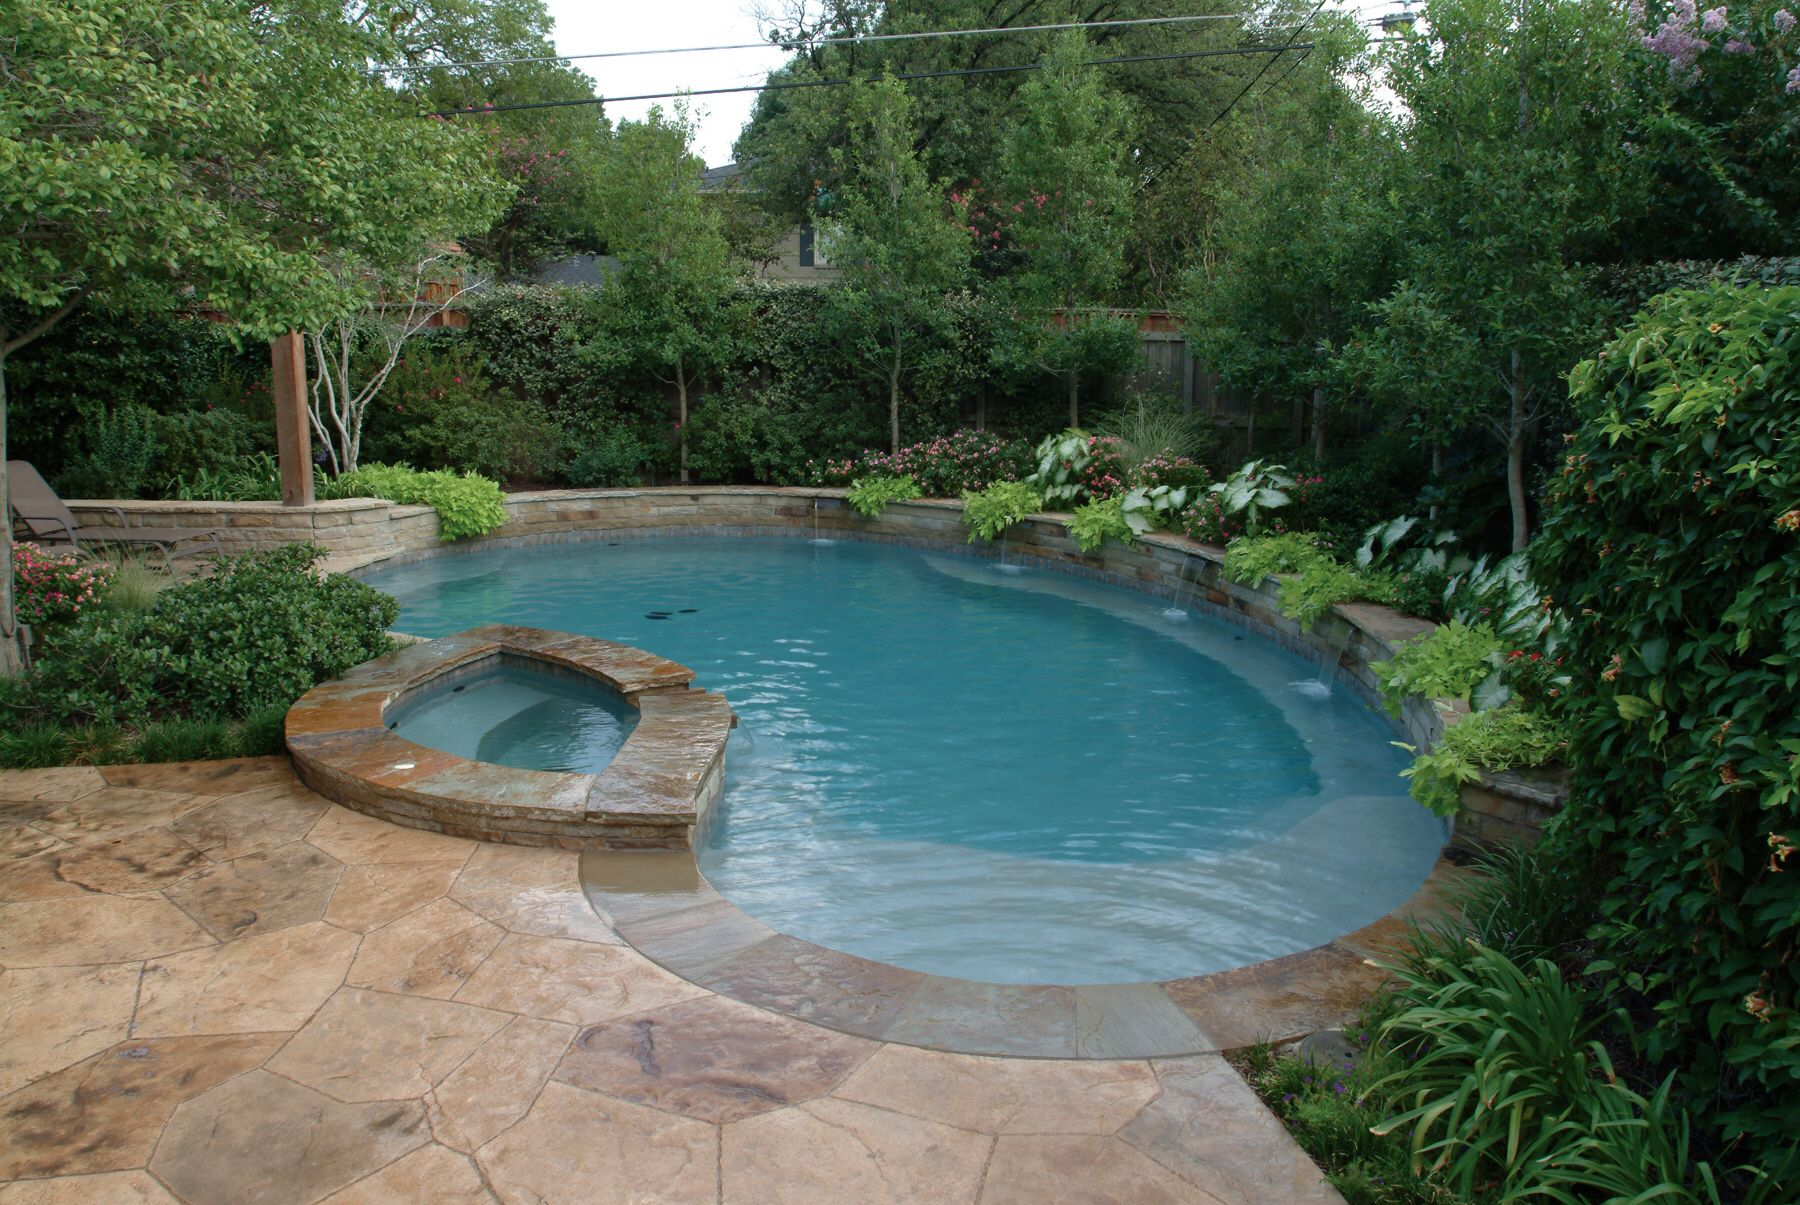 Zero Entry Pool That Might Work For A Yard With A Slope Inground Pool Landscaping Small Backyard Pools Small Inground Pool